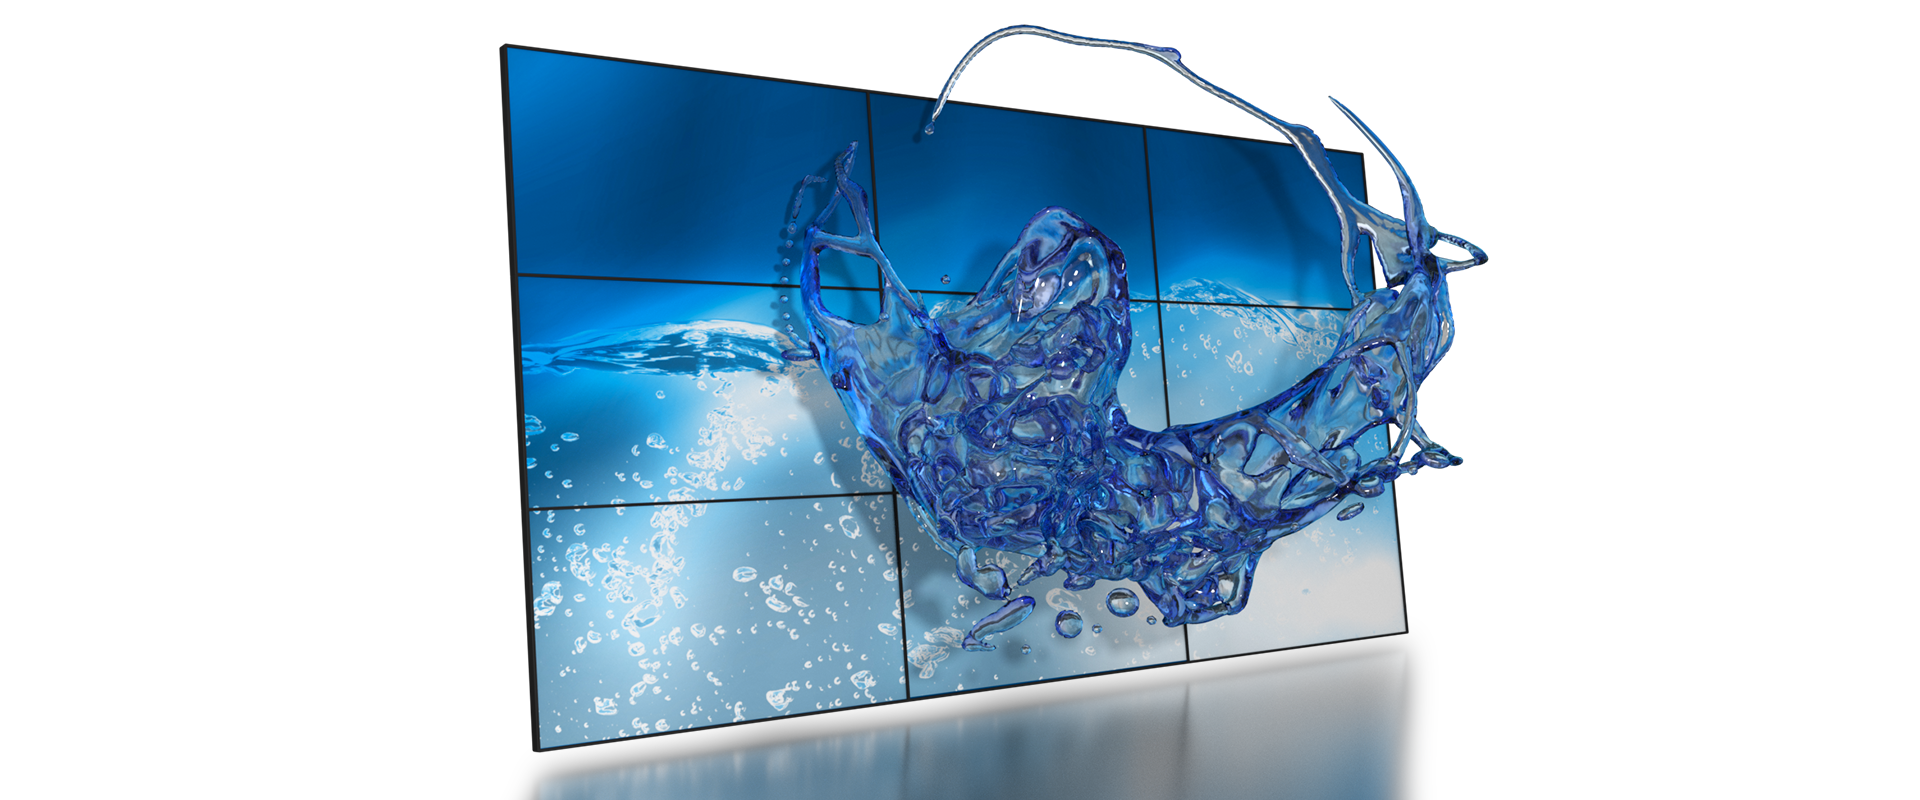 Glasses-free 3D video walls